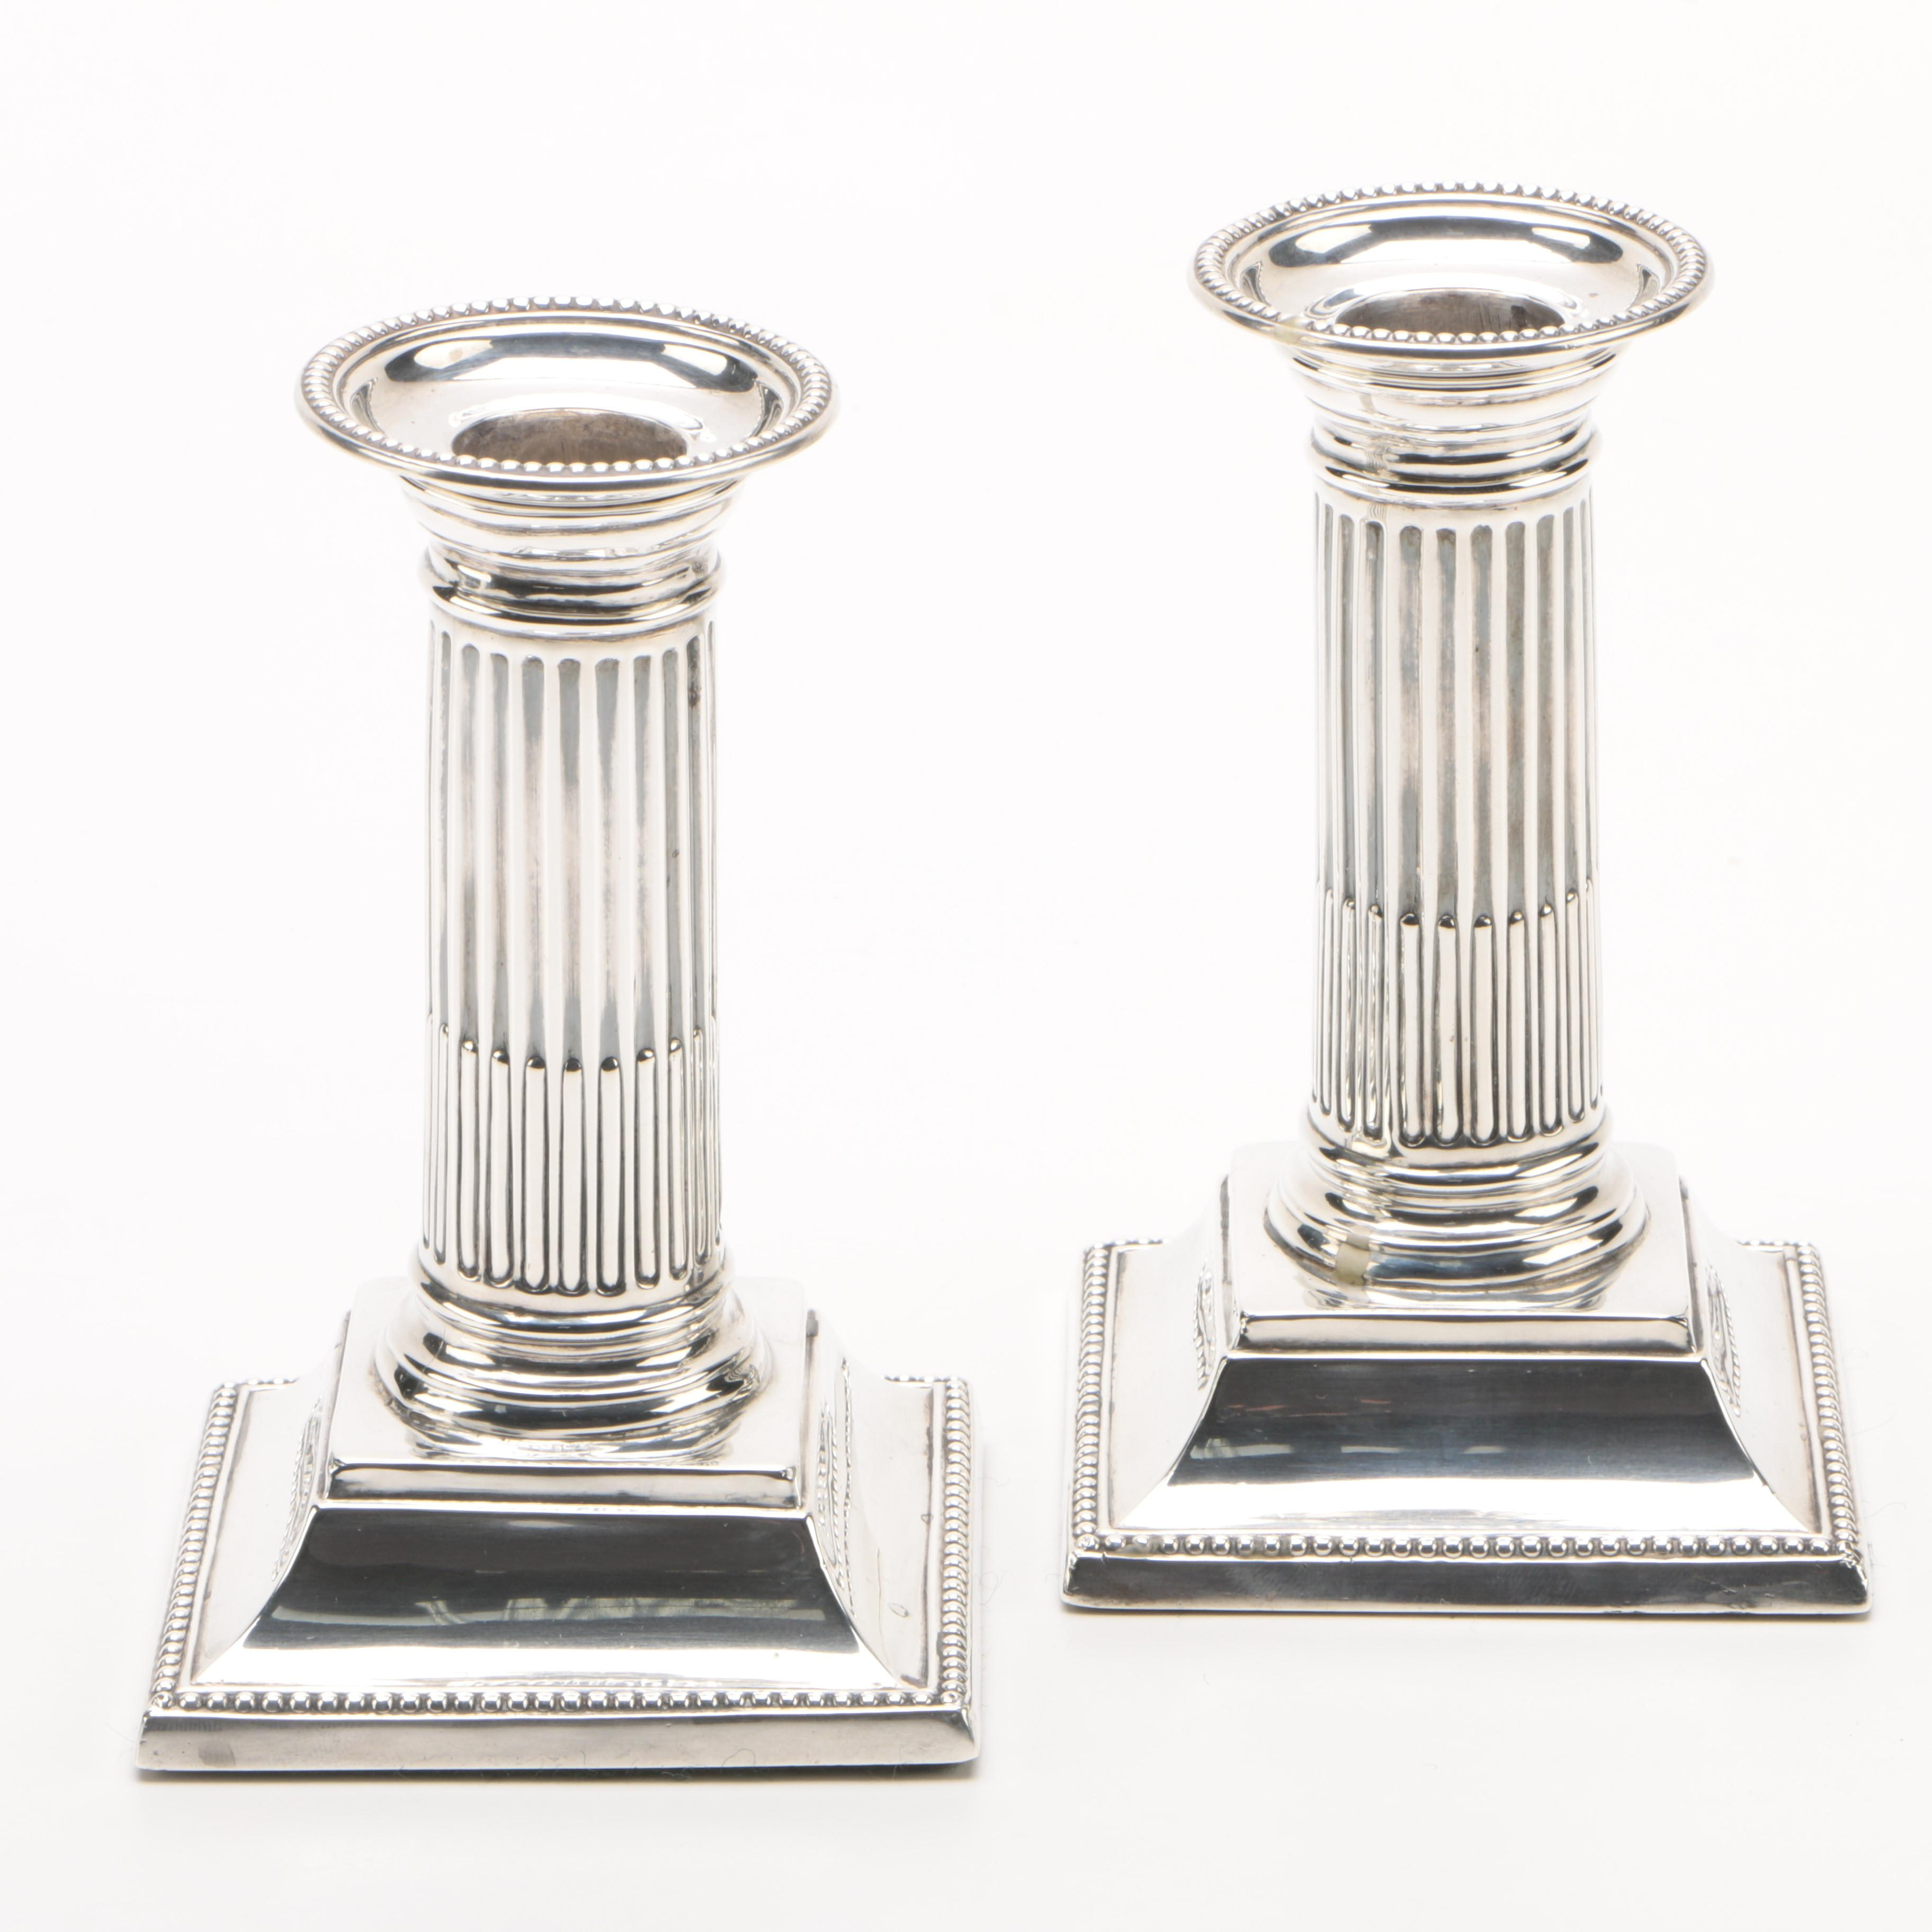 1876 Harrison Brothers & Howson English Weighted Sterling Candlesticks